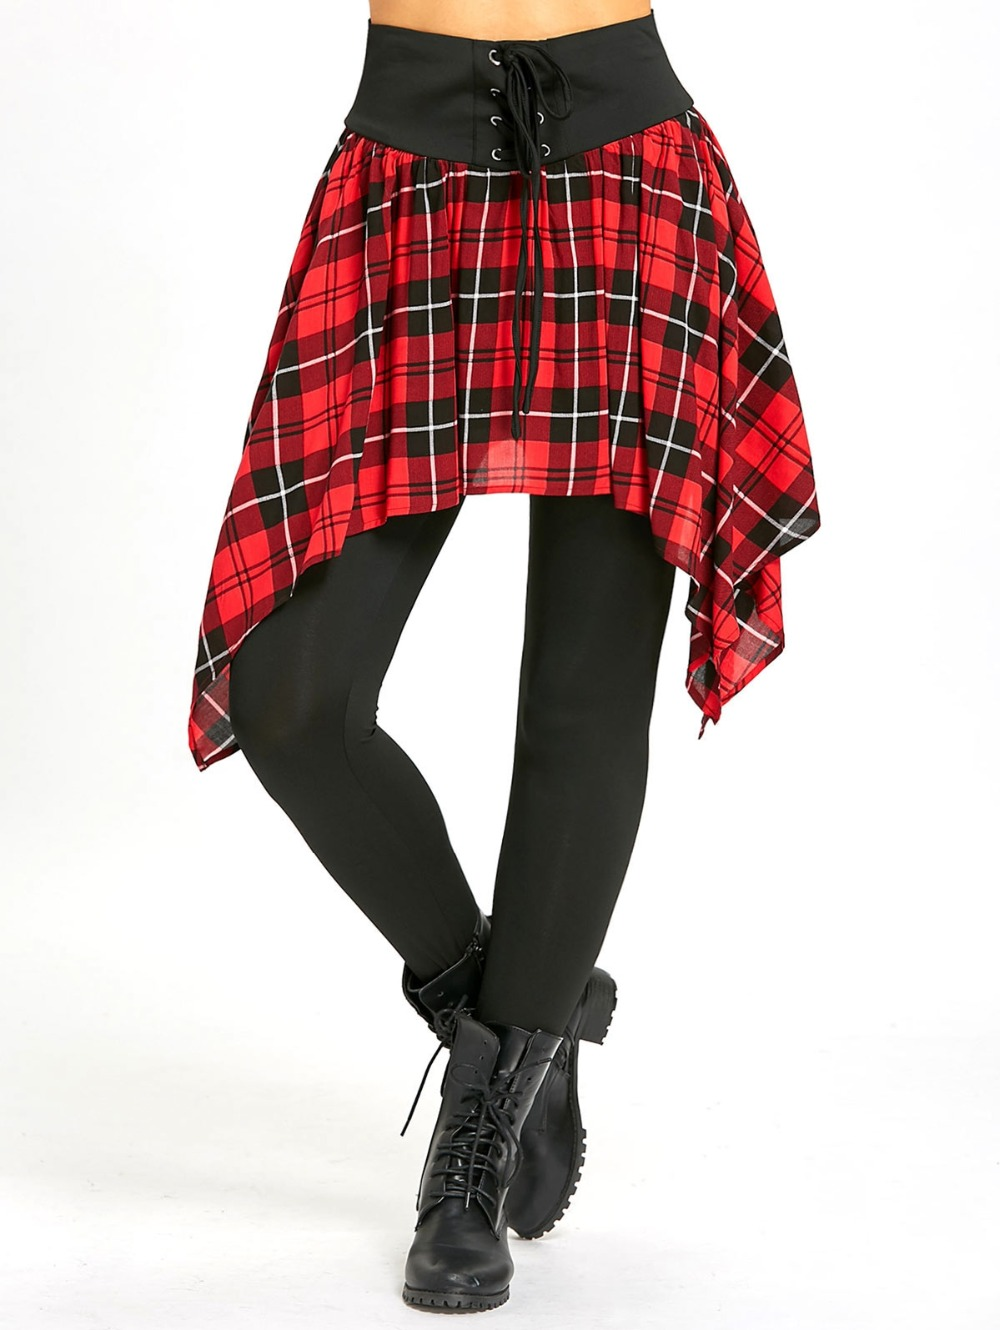 Women Asymmetric Plaid Lace Up Skirted   Leggings   Autumn Fall Long Pants with Skirt Fake Two-piece Suit High Waist   Legging  .